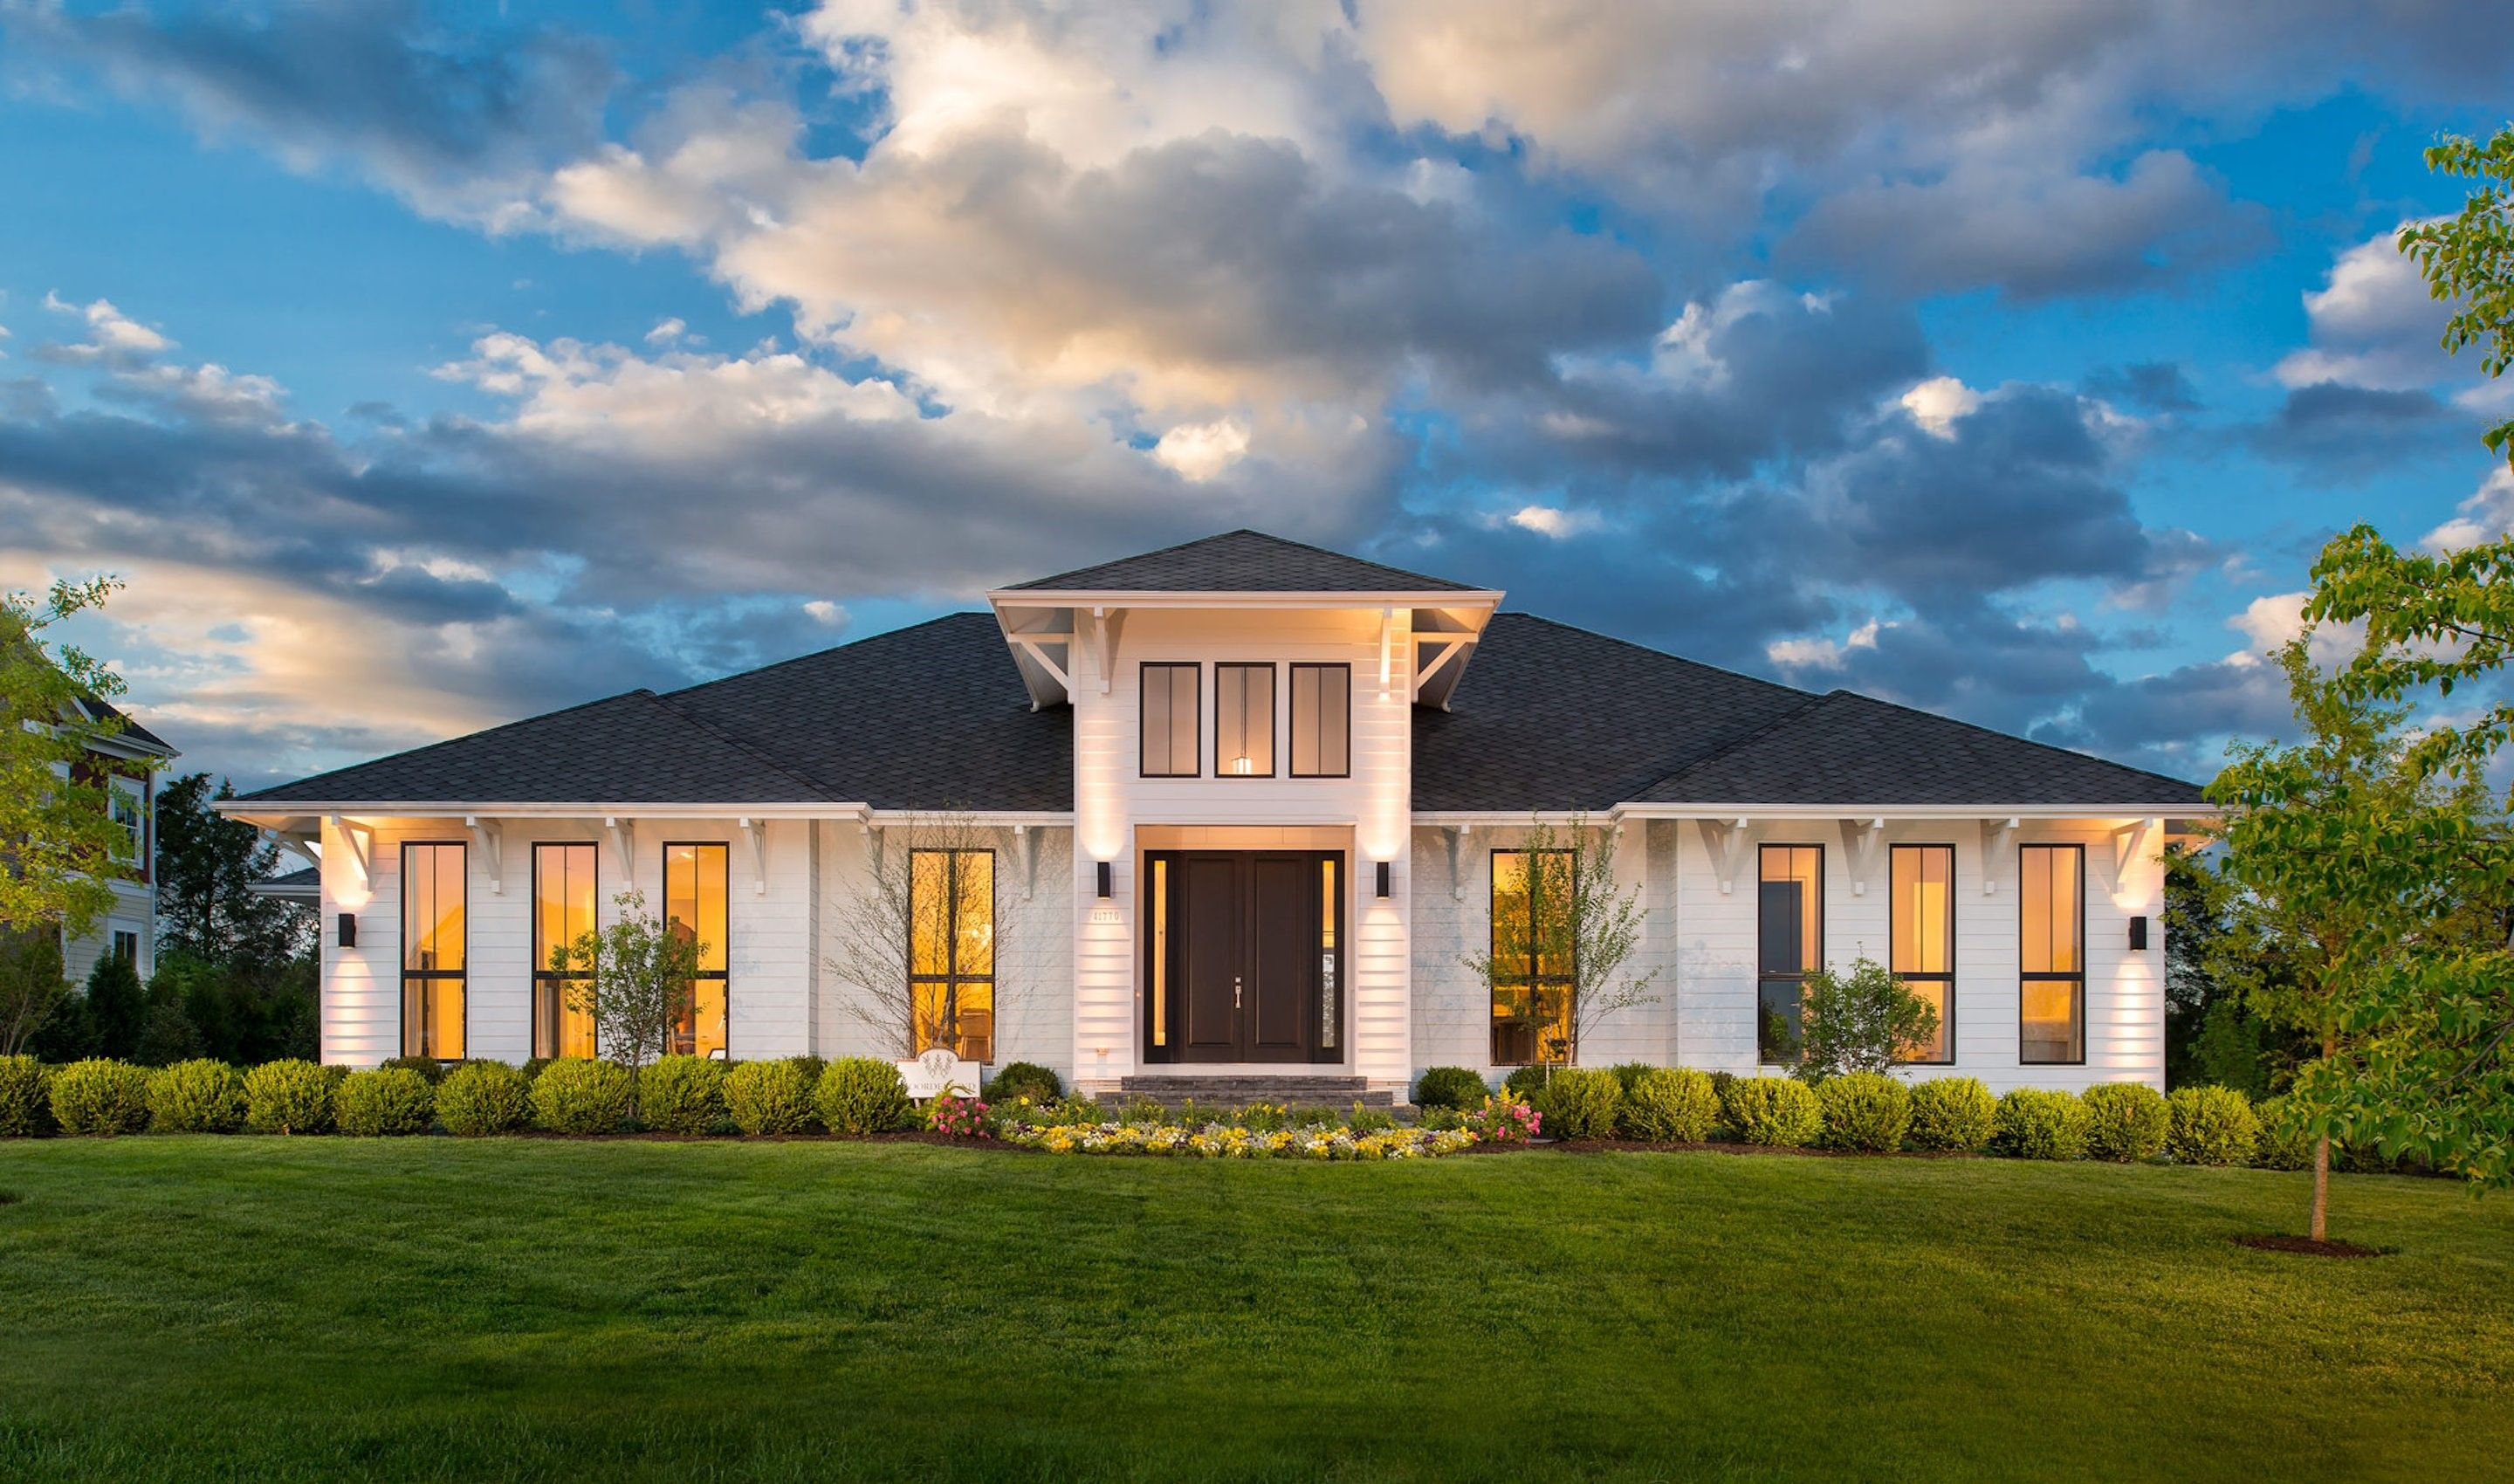 Single Family for Active at Zuiderwind 40880 Blue Star Court, Homesite 10 Aldie, Virginia 20105 United States